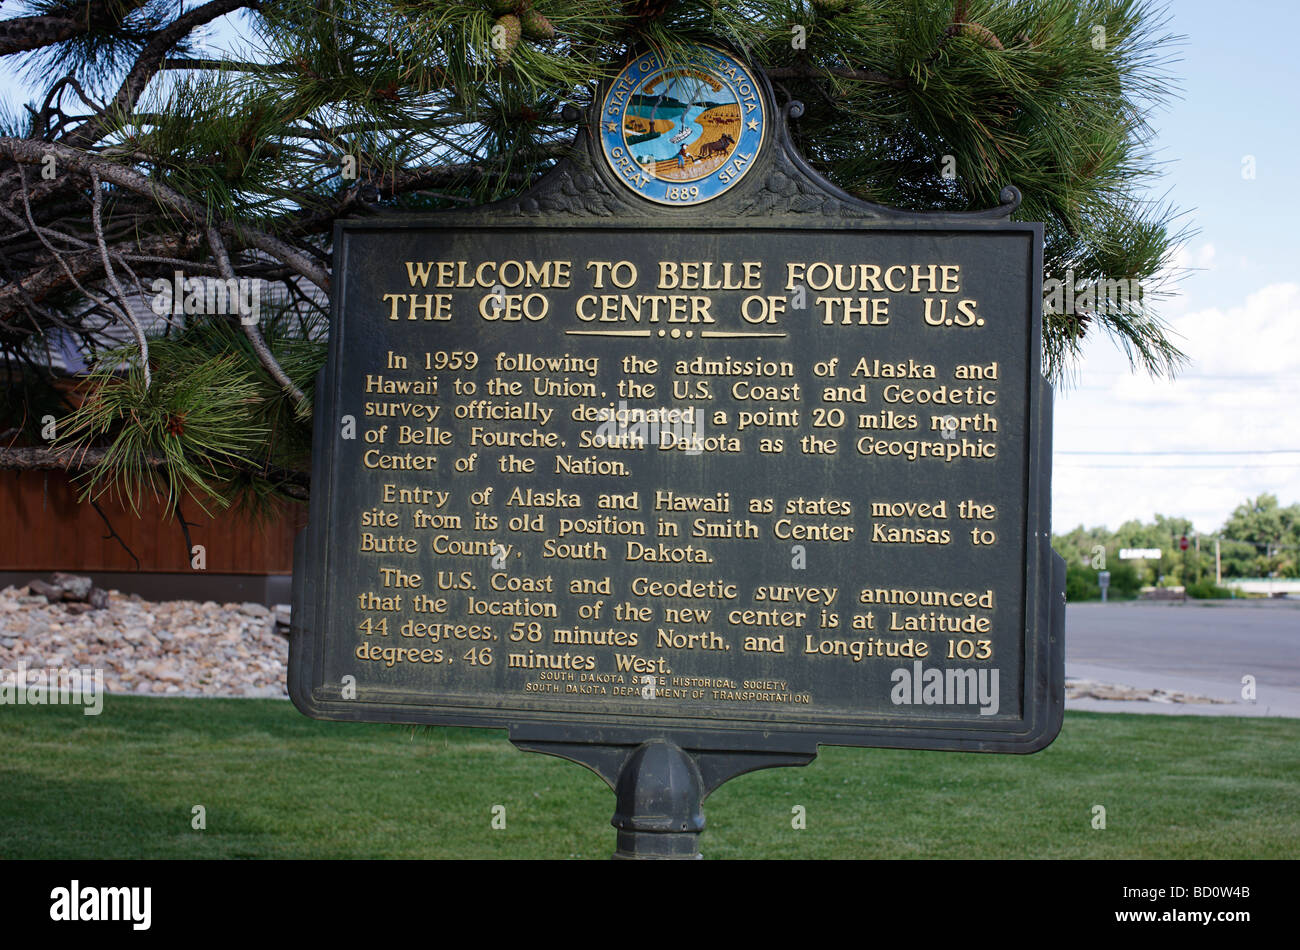 A sign in Belle Fourche, South Dakota marking it as the geographic center of the United States. - Stock Image